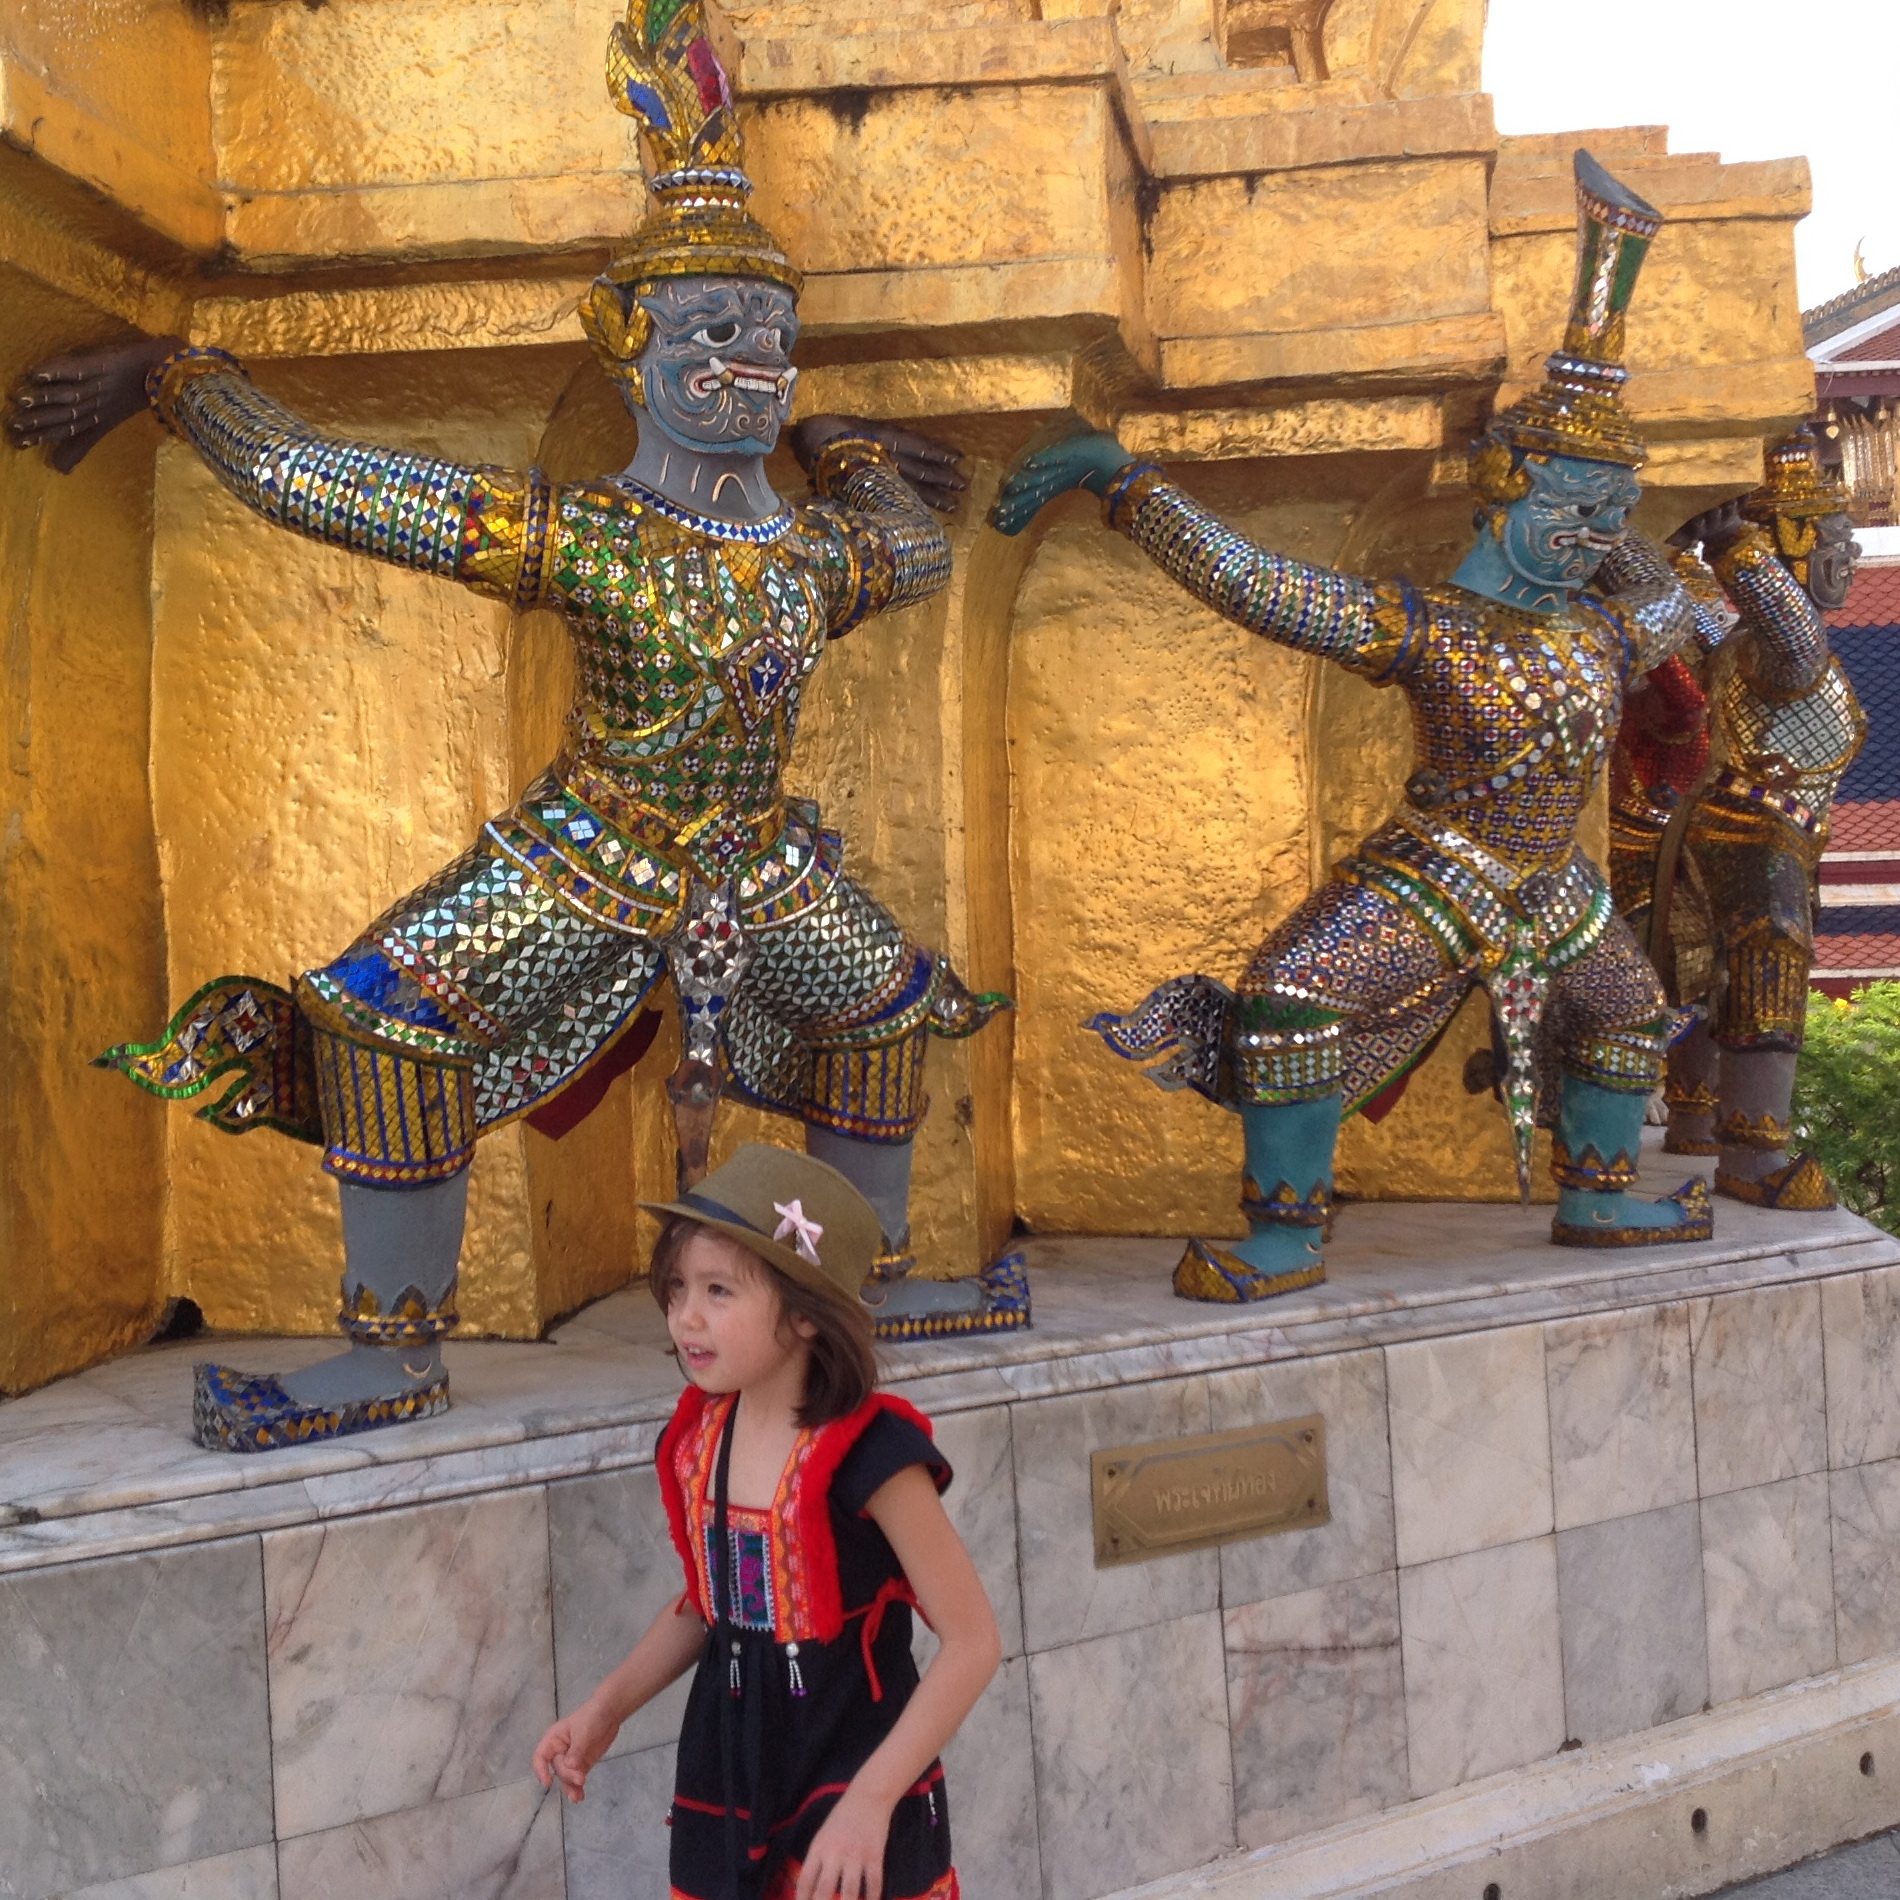 Glittering Grand Palace and the stench in a sacred temple